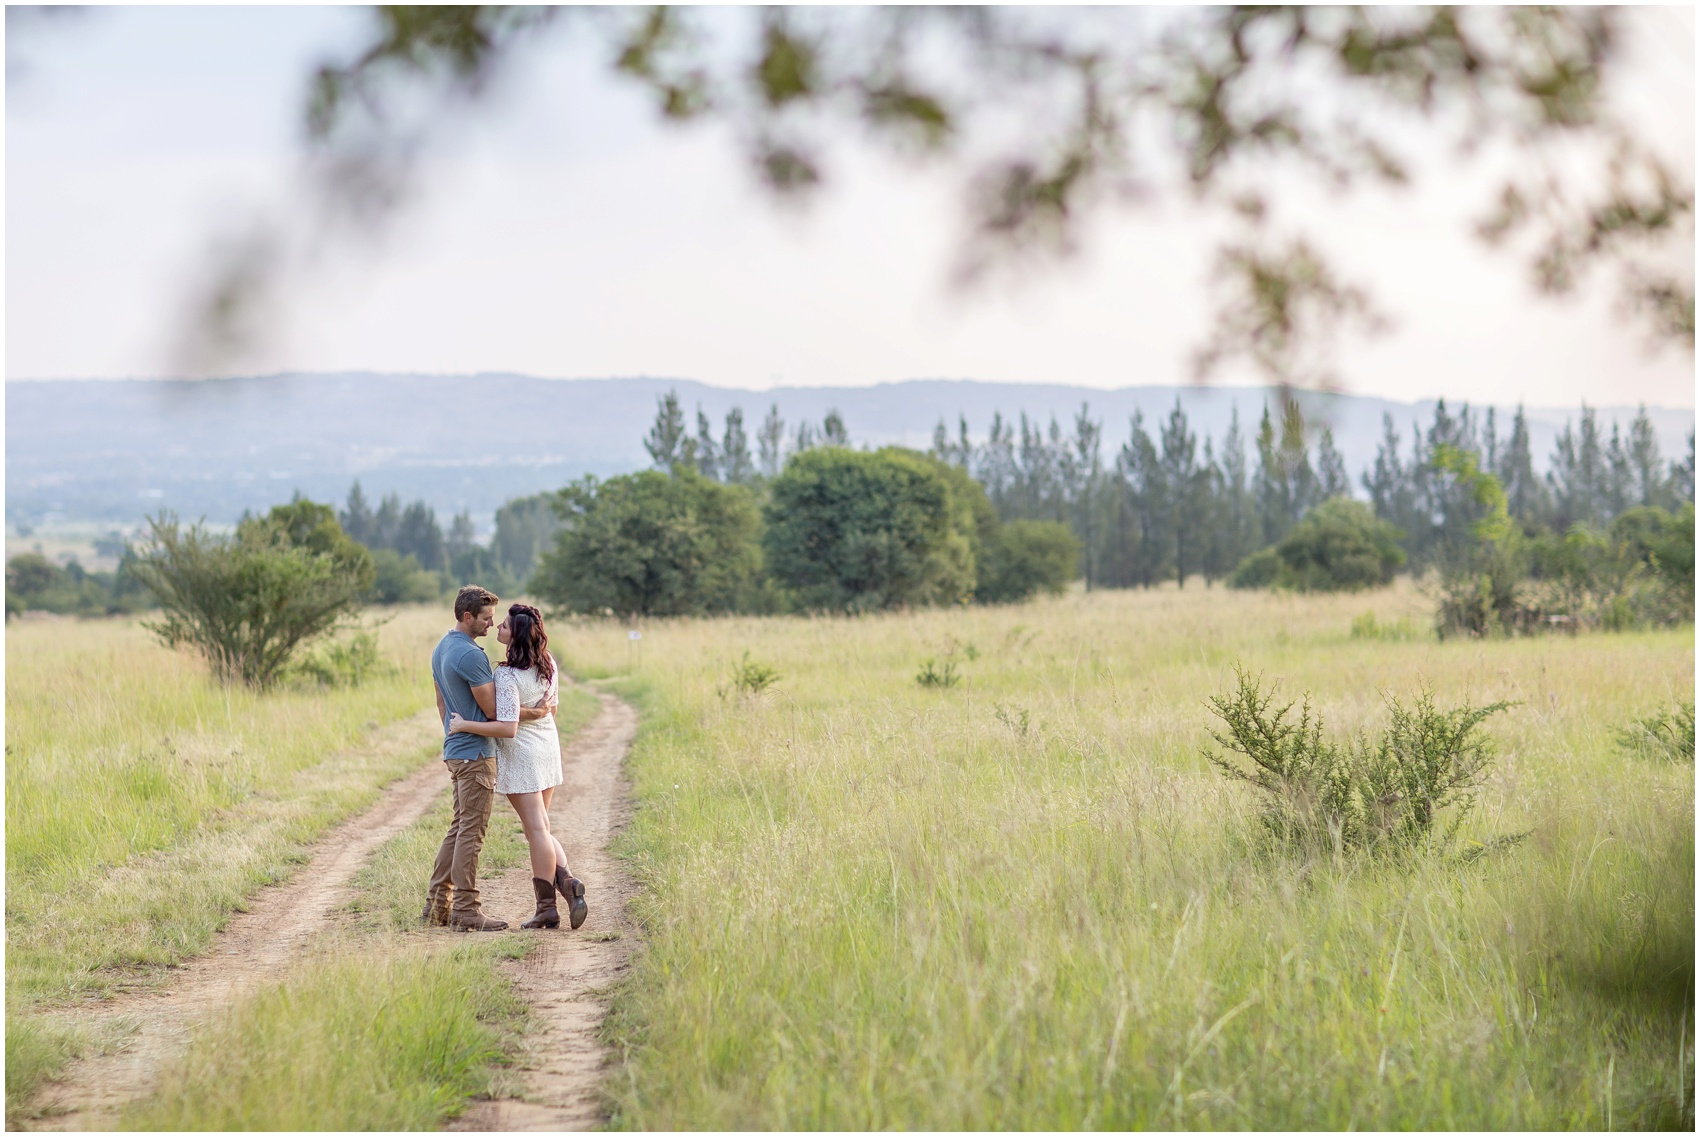 rosemary_hill_engagement_shoot_stephanie_and_jannie_15